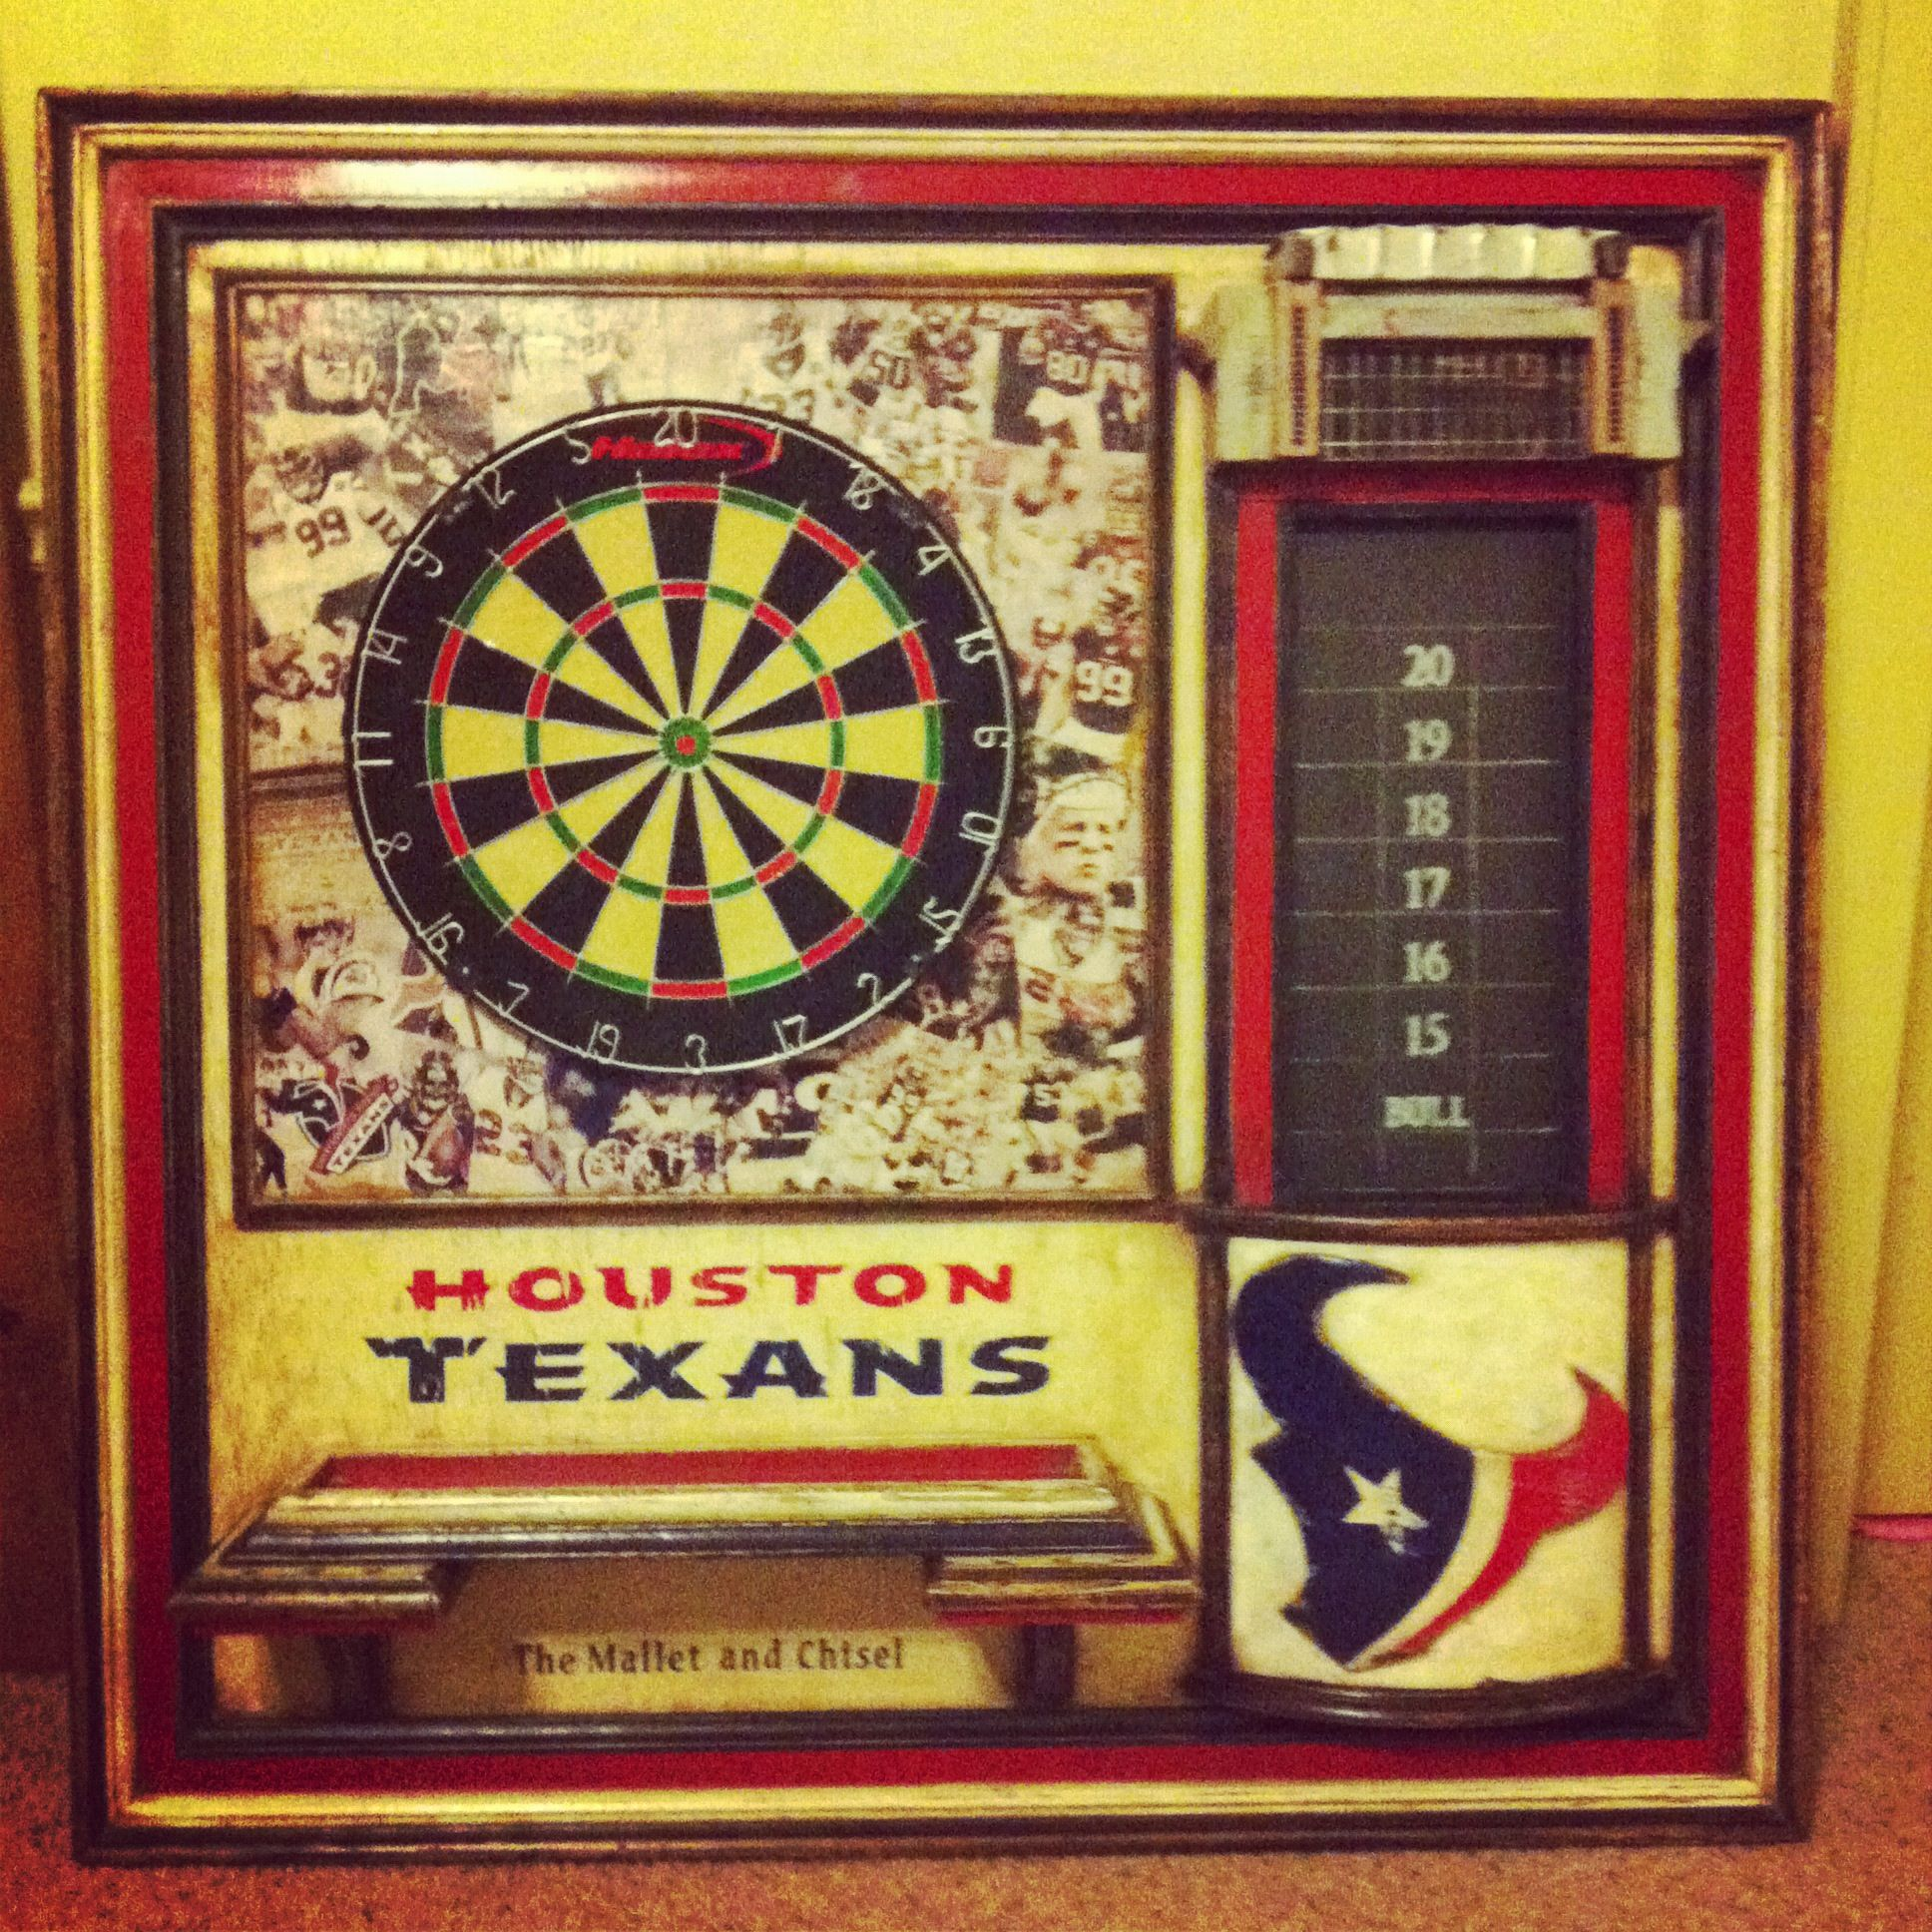 Houston Texans Dartboard  @themalletandchisel.com